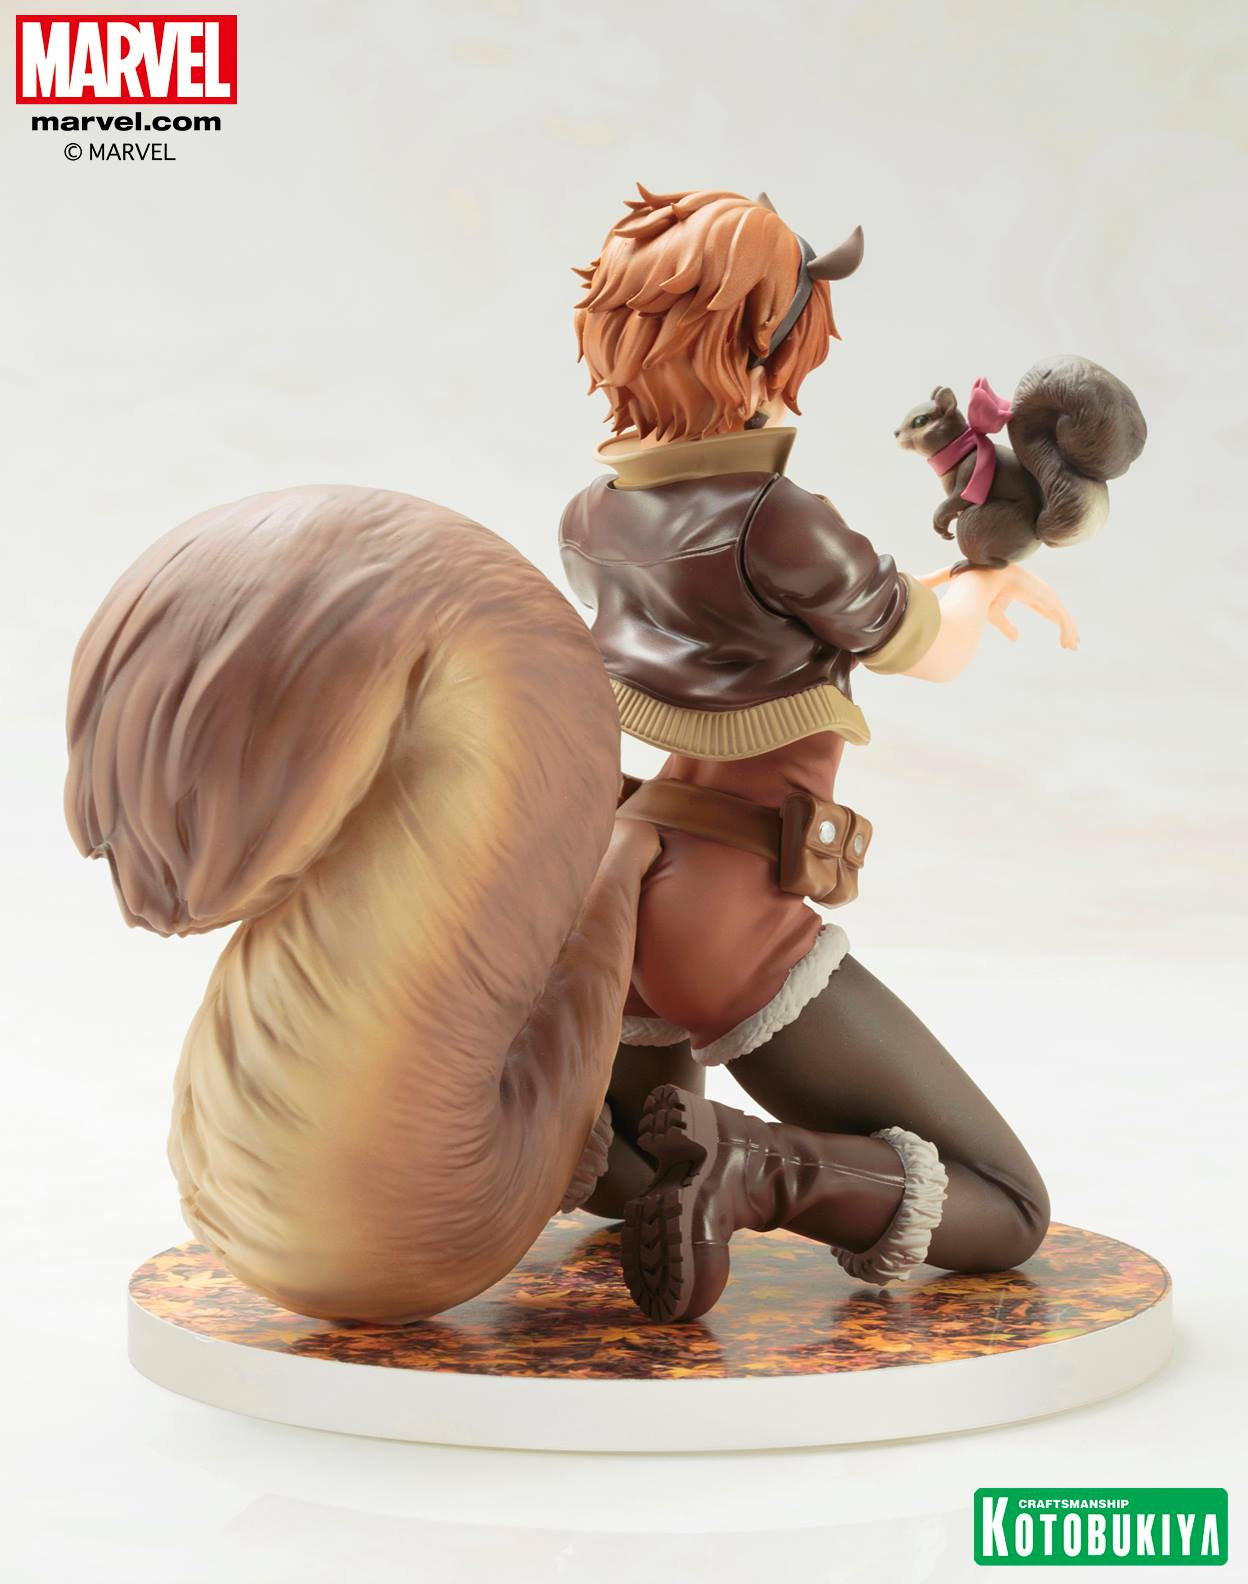 squirrel-girl-bishoujo-statue-marvel-kotobukiya-4